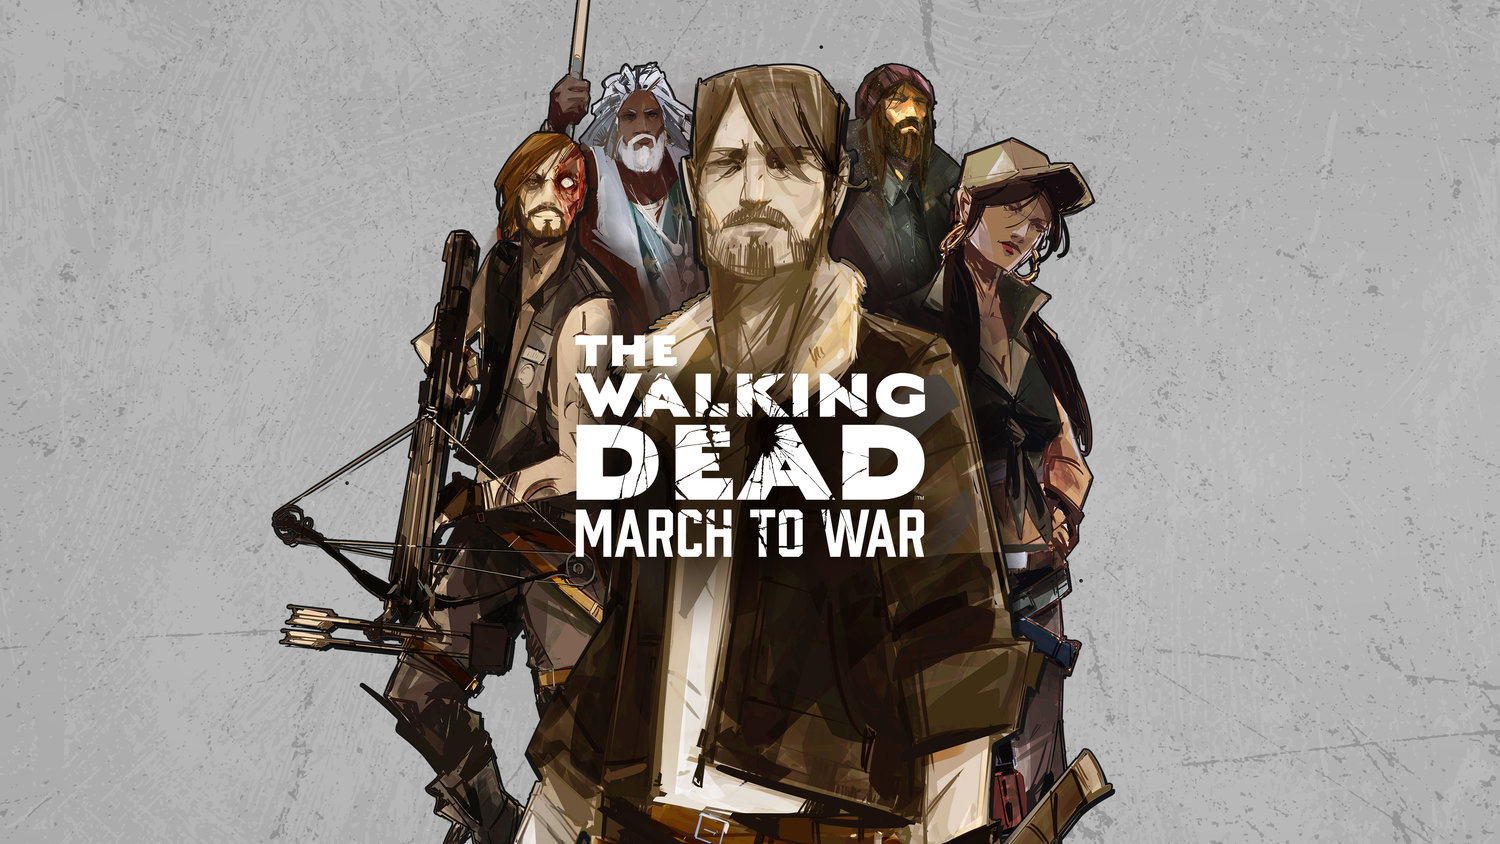 The.Walking.Dead.March.To.War.1